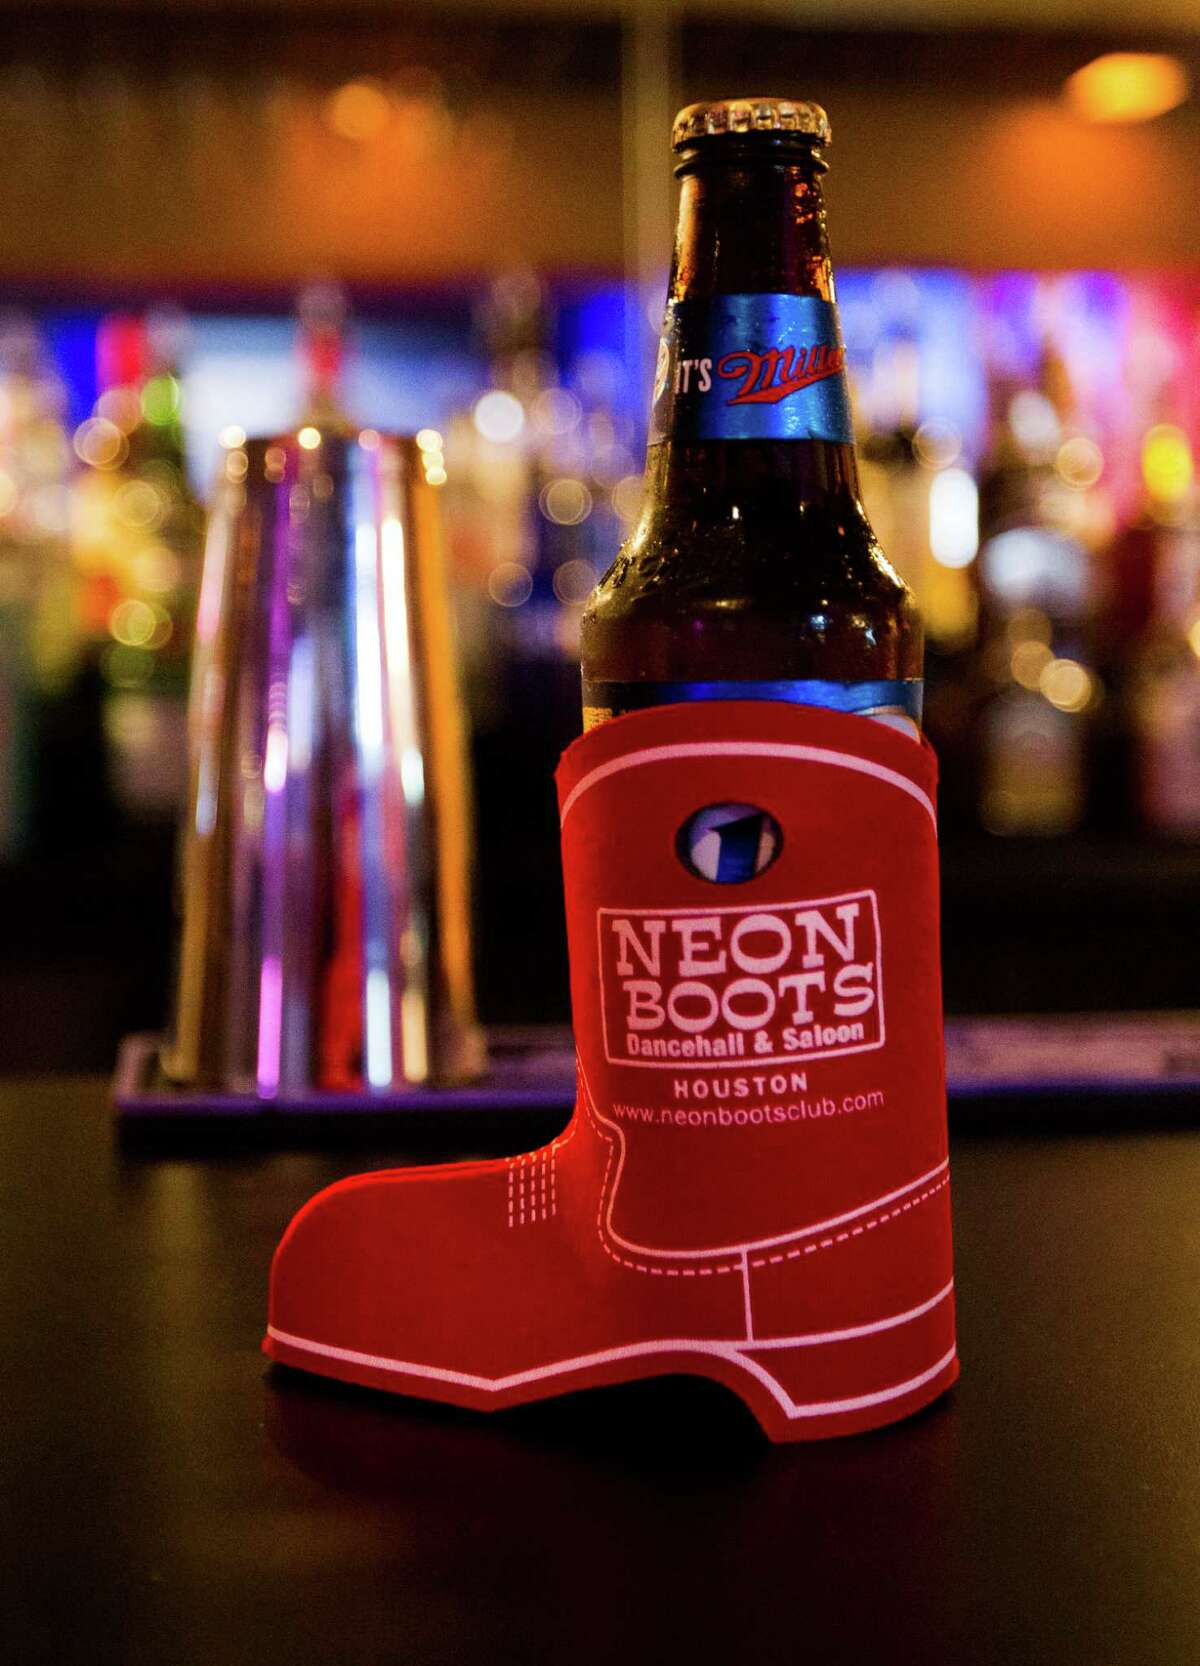 A beer sits in a koozie at Neon Boots on Friday, Aug. 16, 2013, in Houston. ( J. Patric Schneider / For the Chronicle )